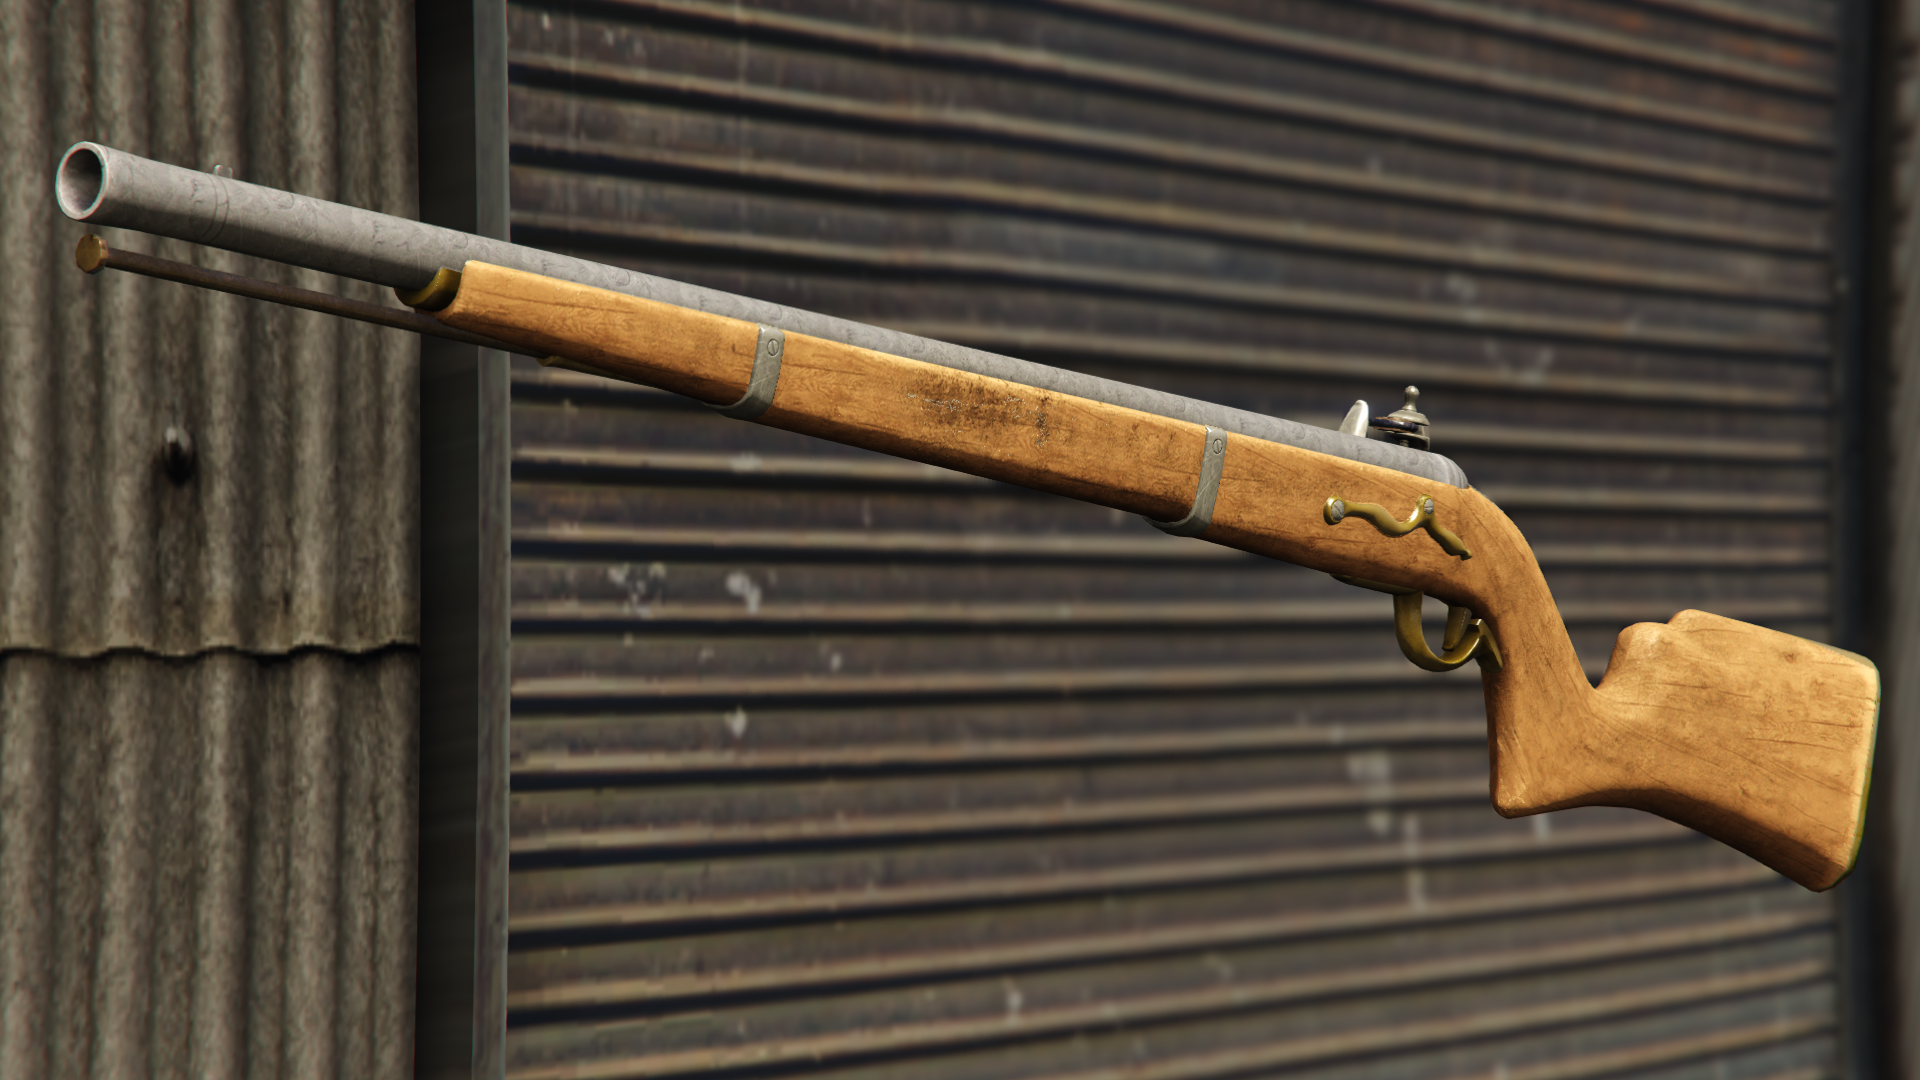 Musket | GTA Wiki | FANDOM powered by Wikia